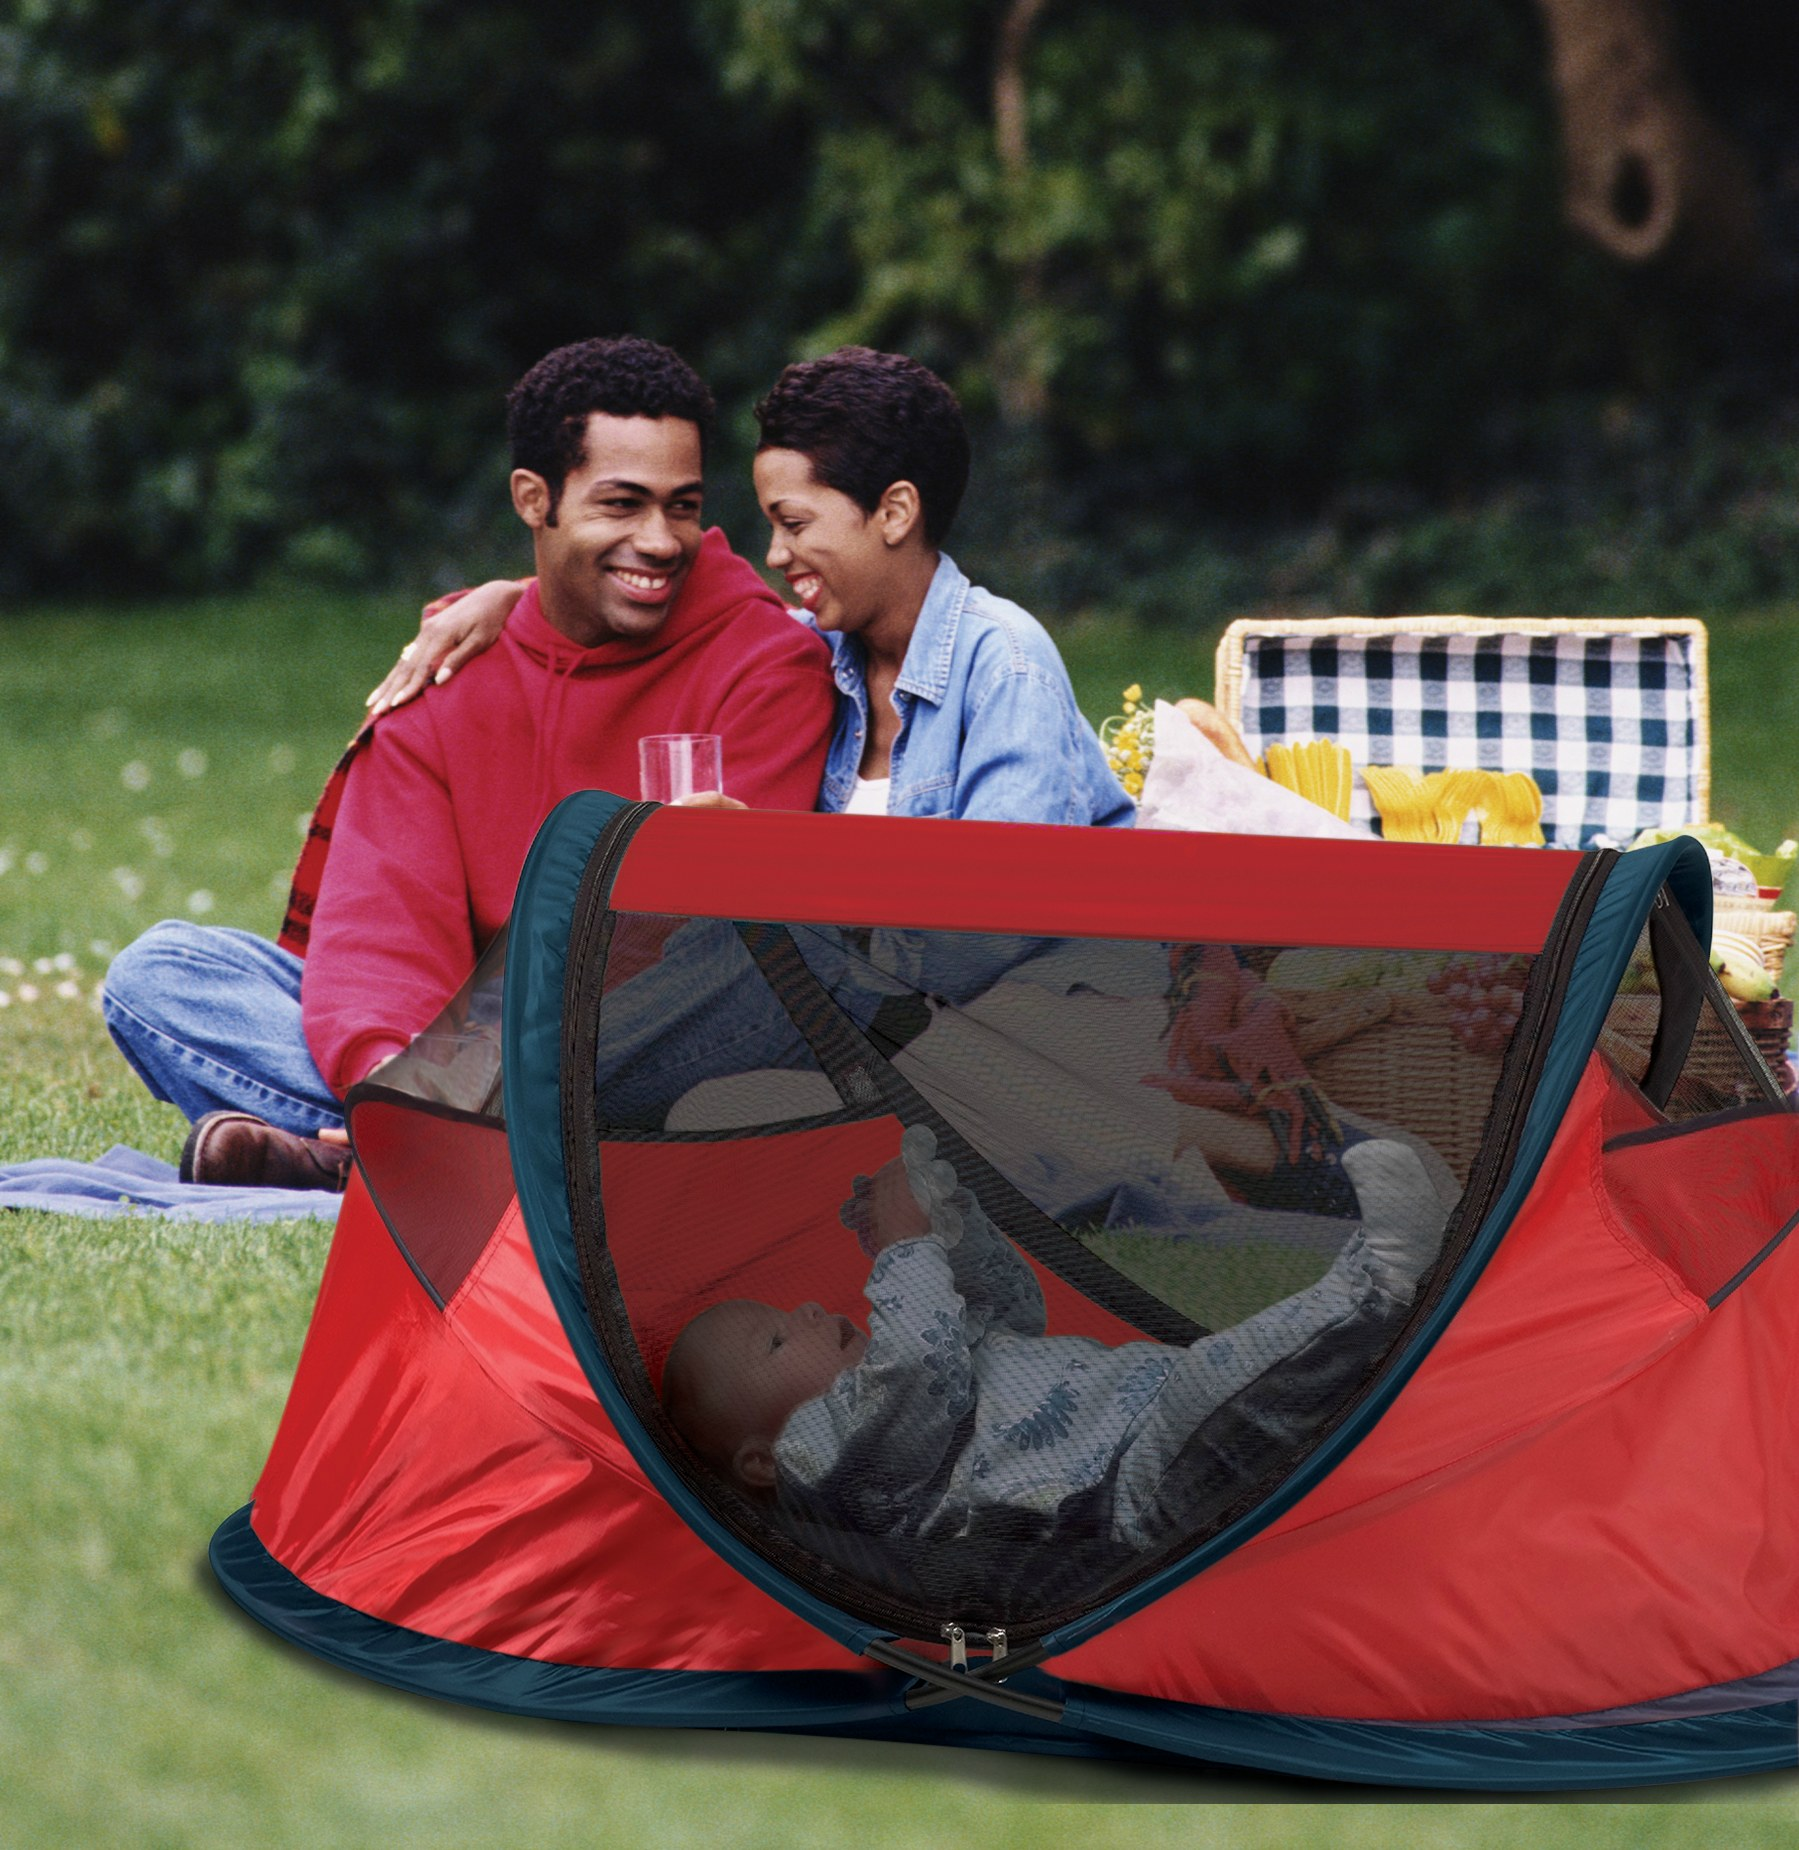 1862_babyluxe-red-picnic-2